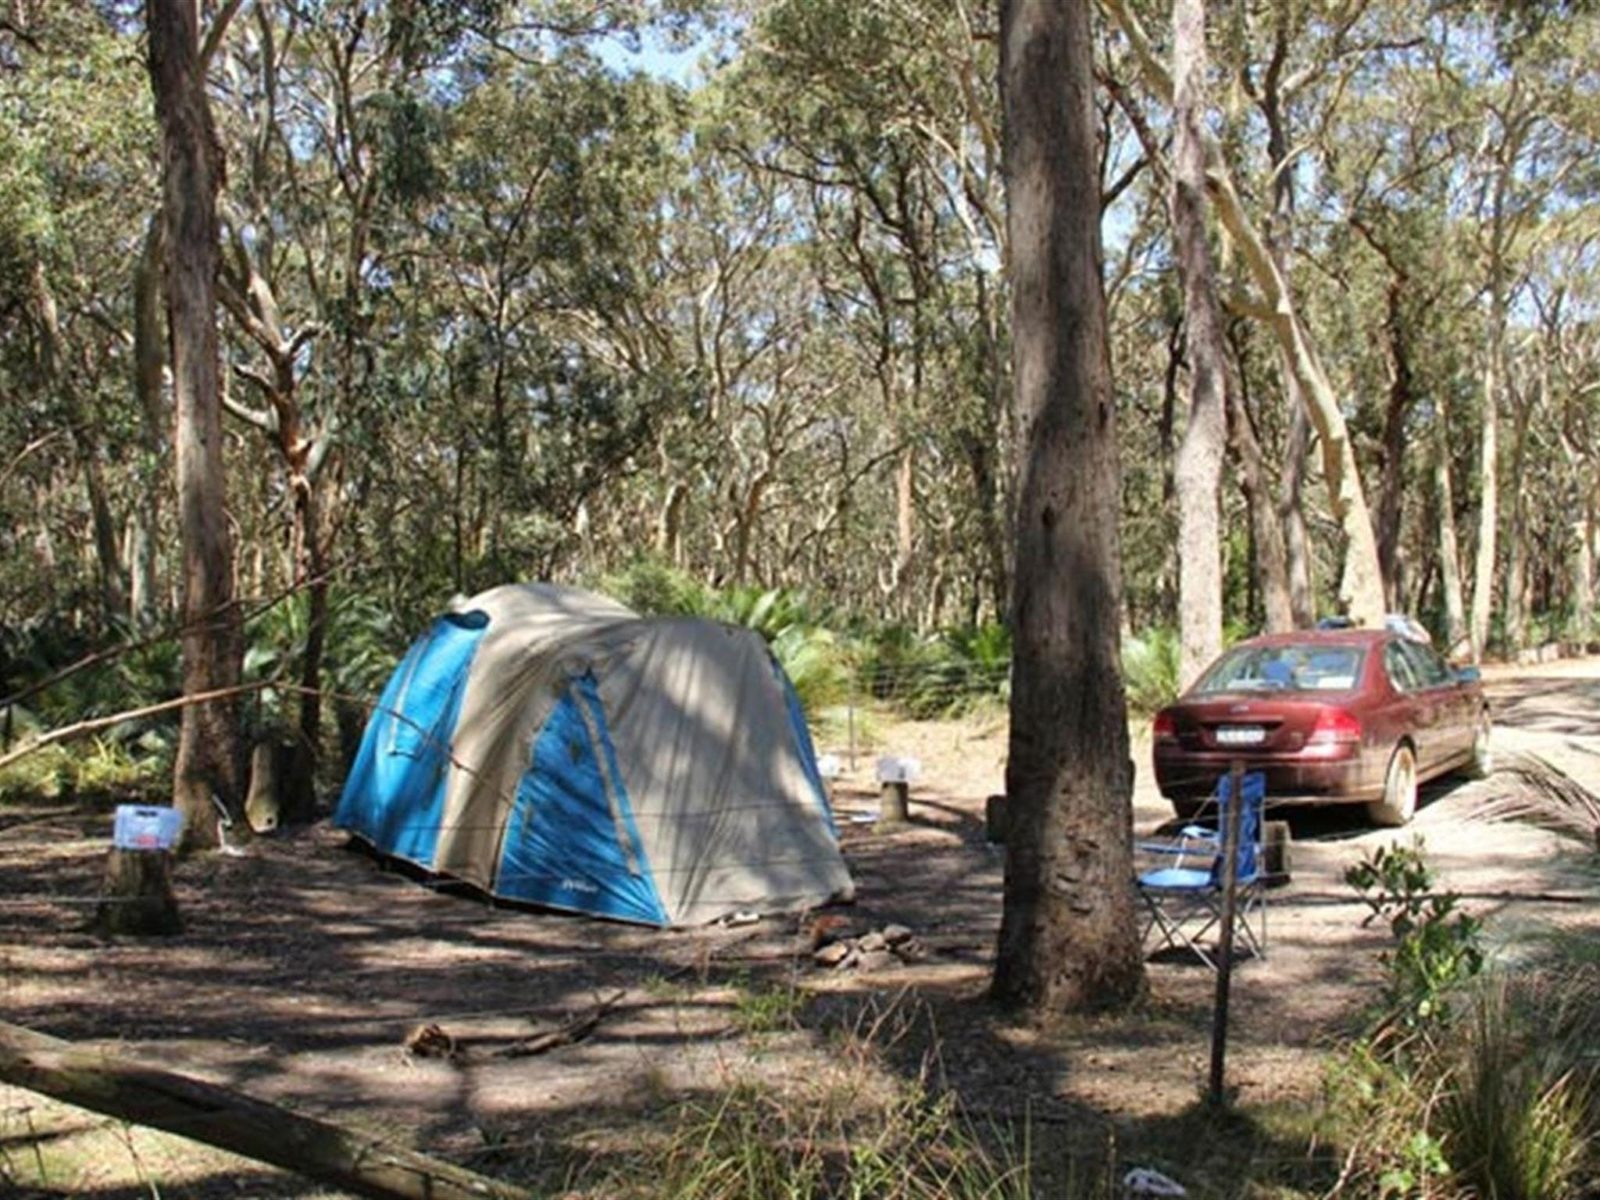 North Head Campground, Murramarang National Park. Photo: John Yurasek/NSW Government